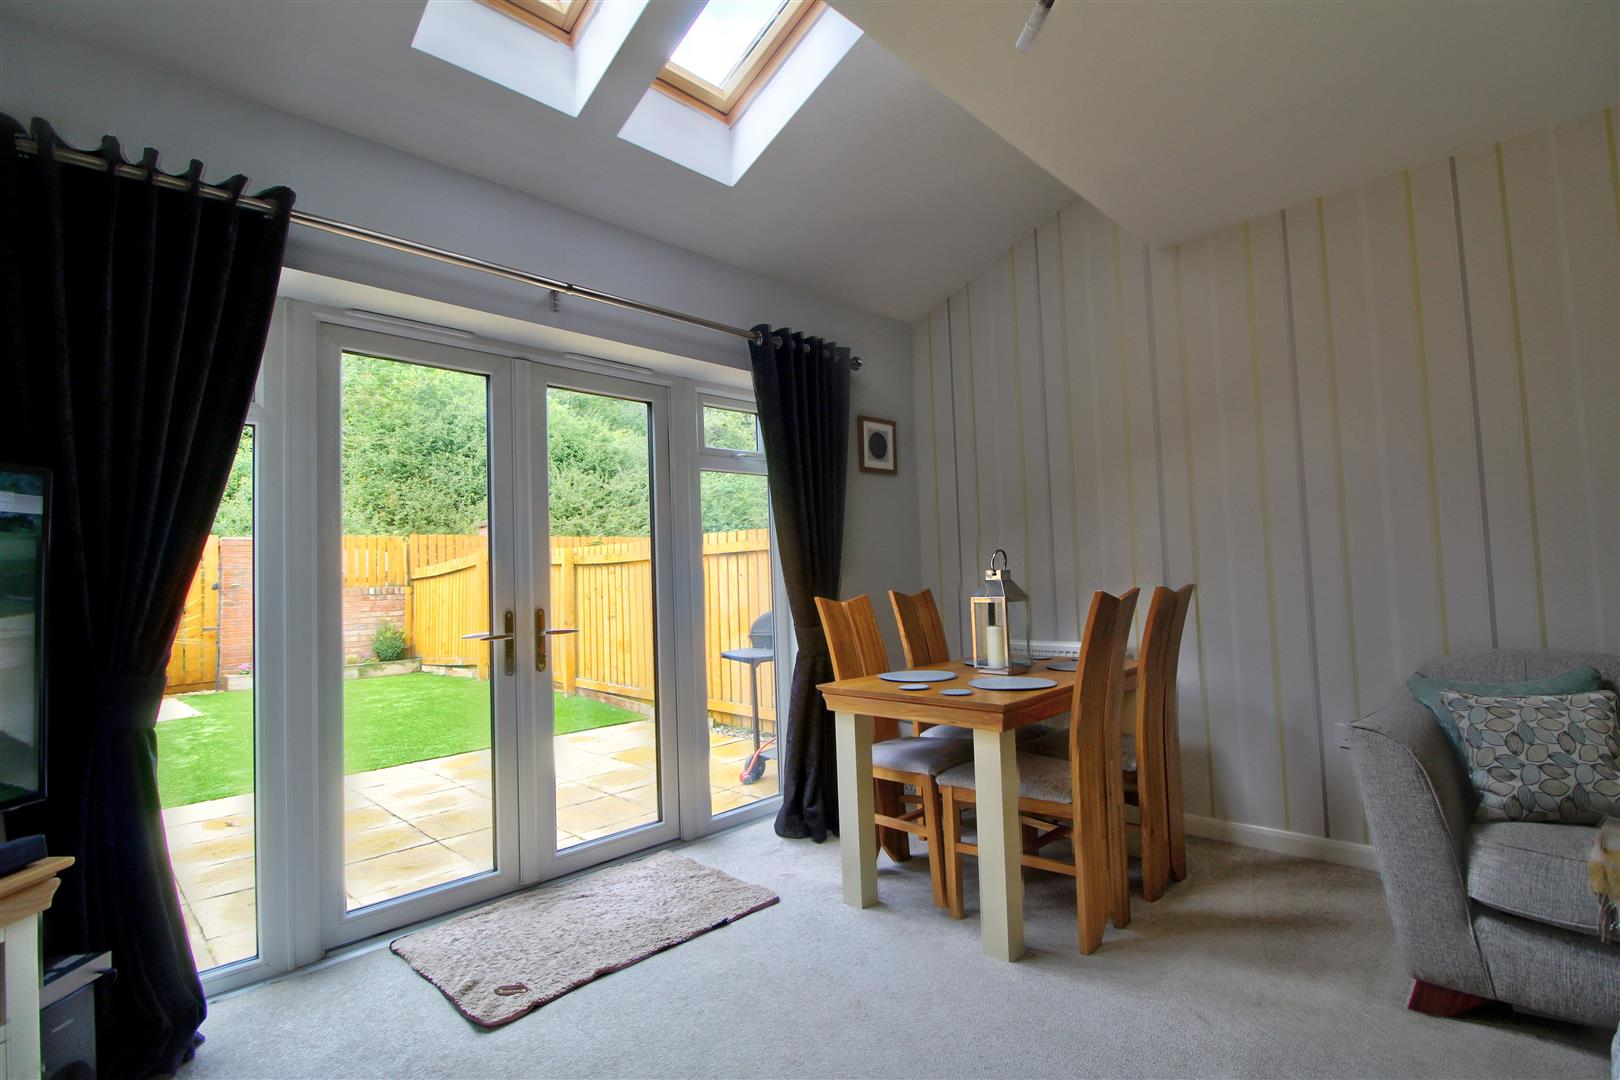 Property In Whitworth Park Drive Houghton Le Spring Dh4